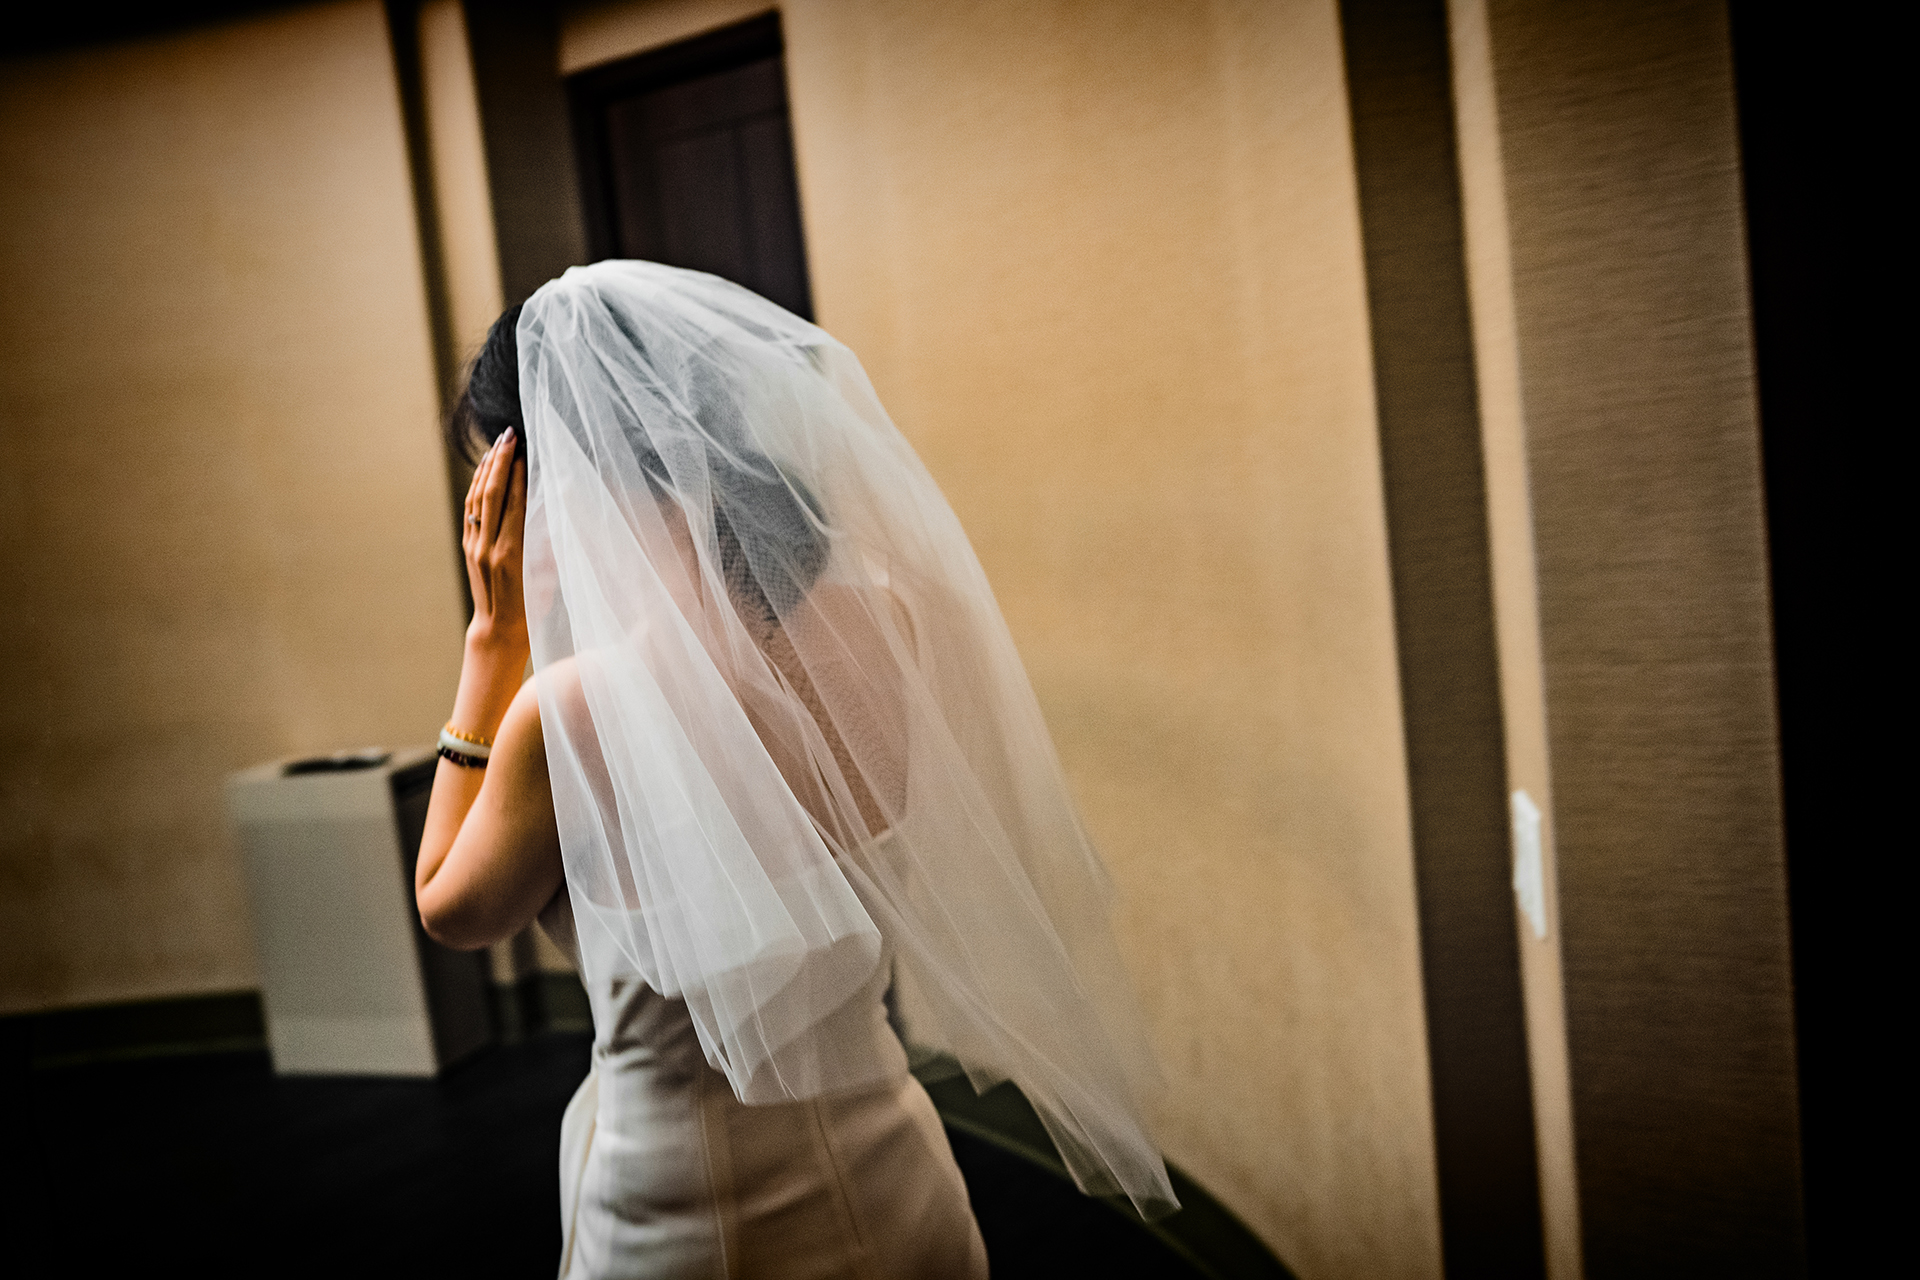 City Clerk at New York City - Bride Elopement Photo | The bride walks into the ceremony chambers